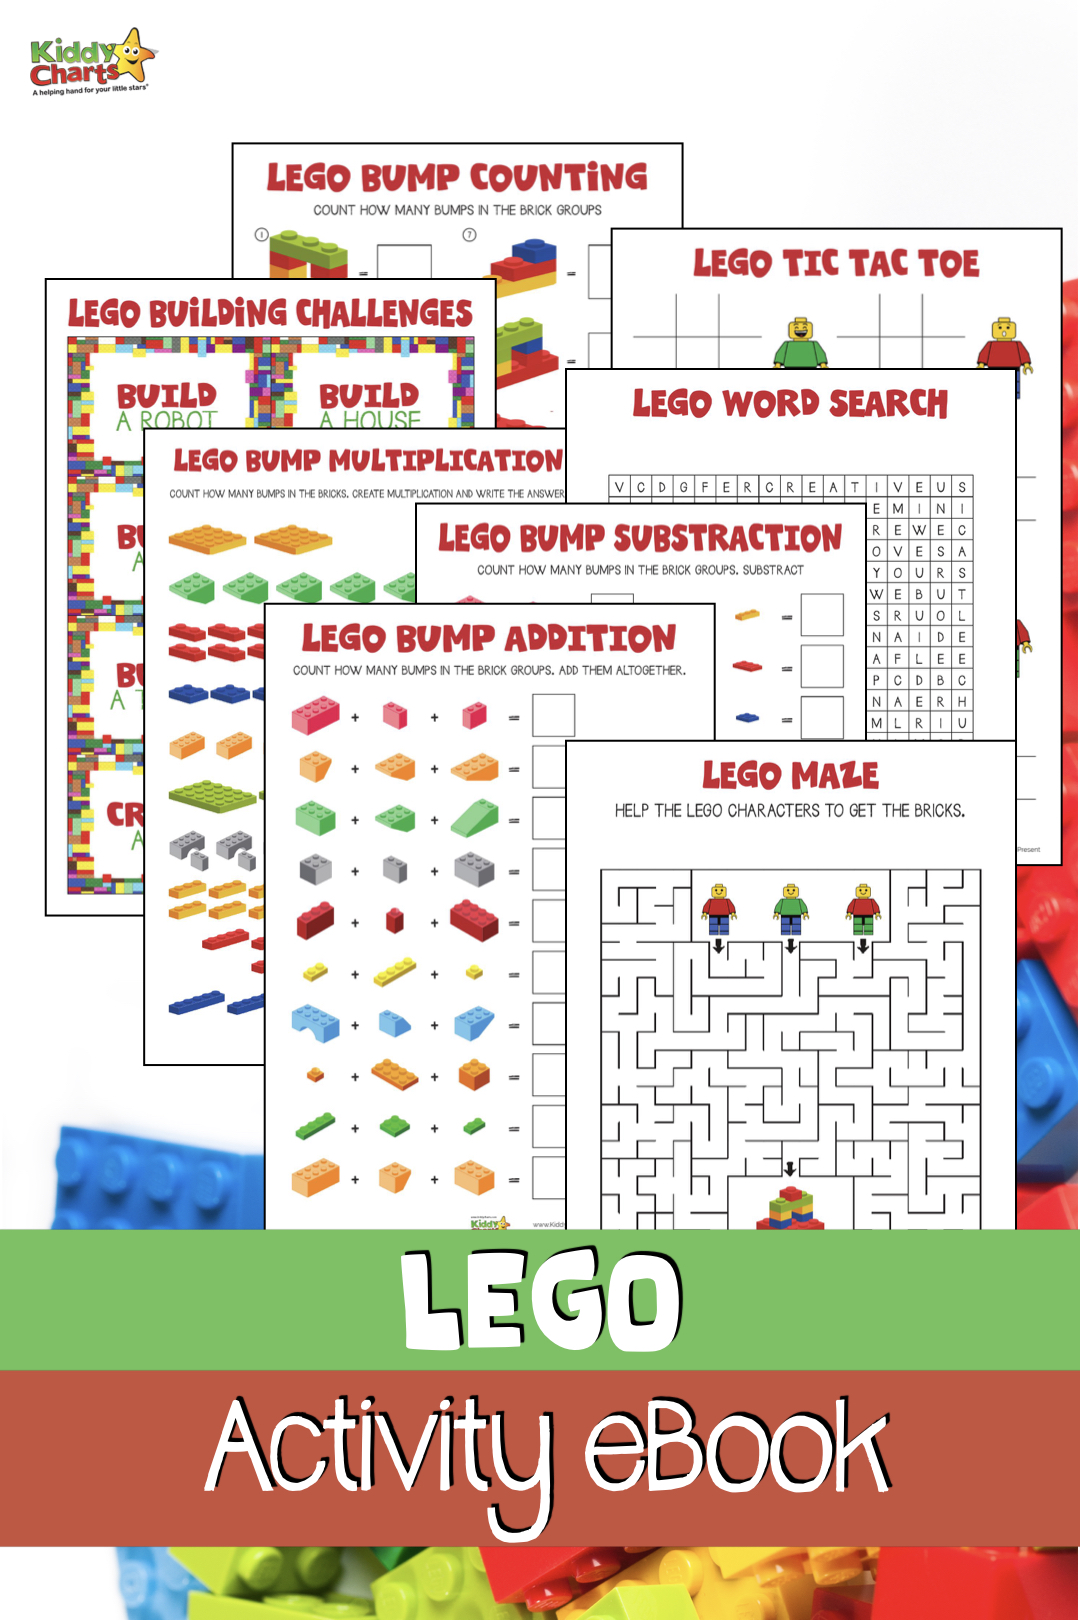 Who doesn't love LEGO?!? We have a Lego activities book for FREE for the kids - perfect for you to download and give them some fun things to do anytime of year! #Lego #kidsactivities #legoforkids #legofun #free #freeactivities #printables #ebooks #freeebooks